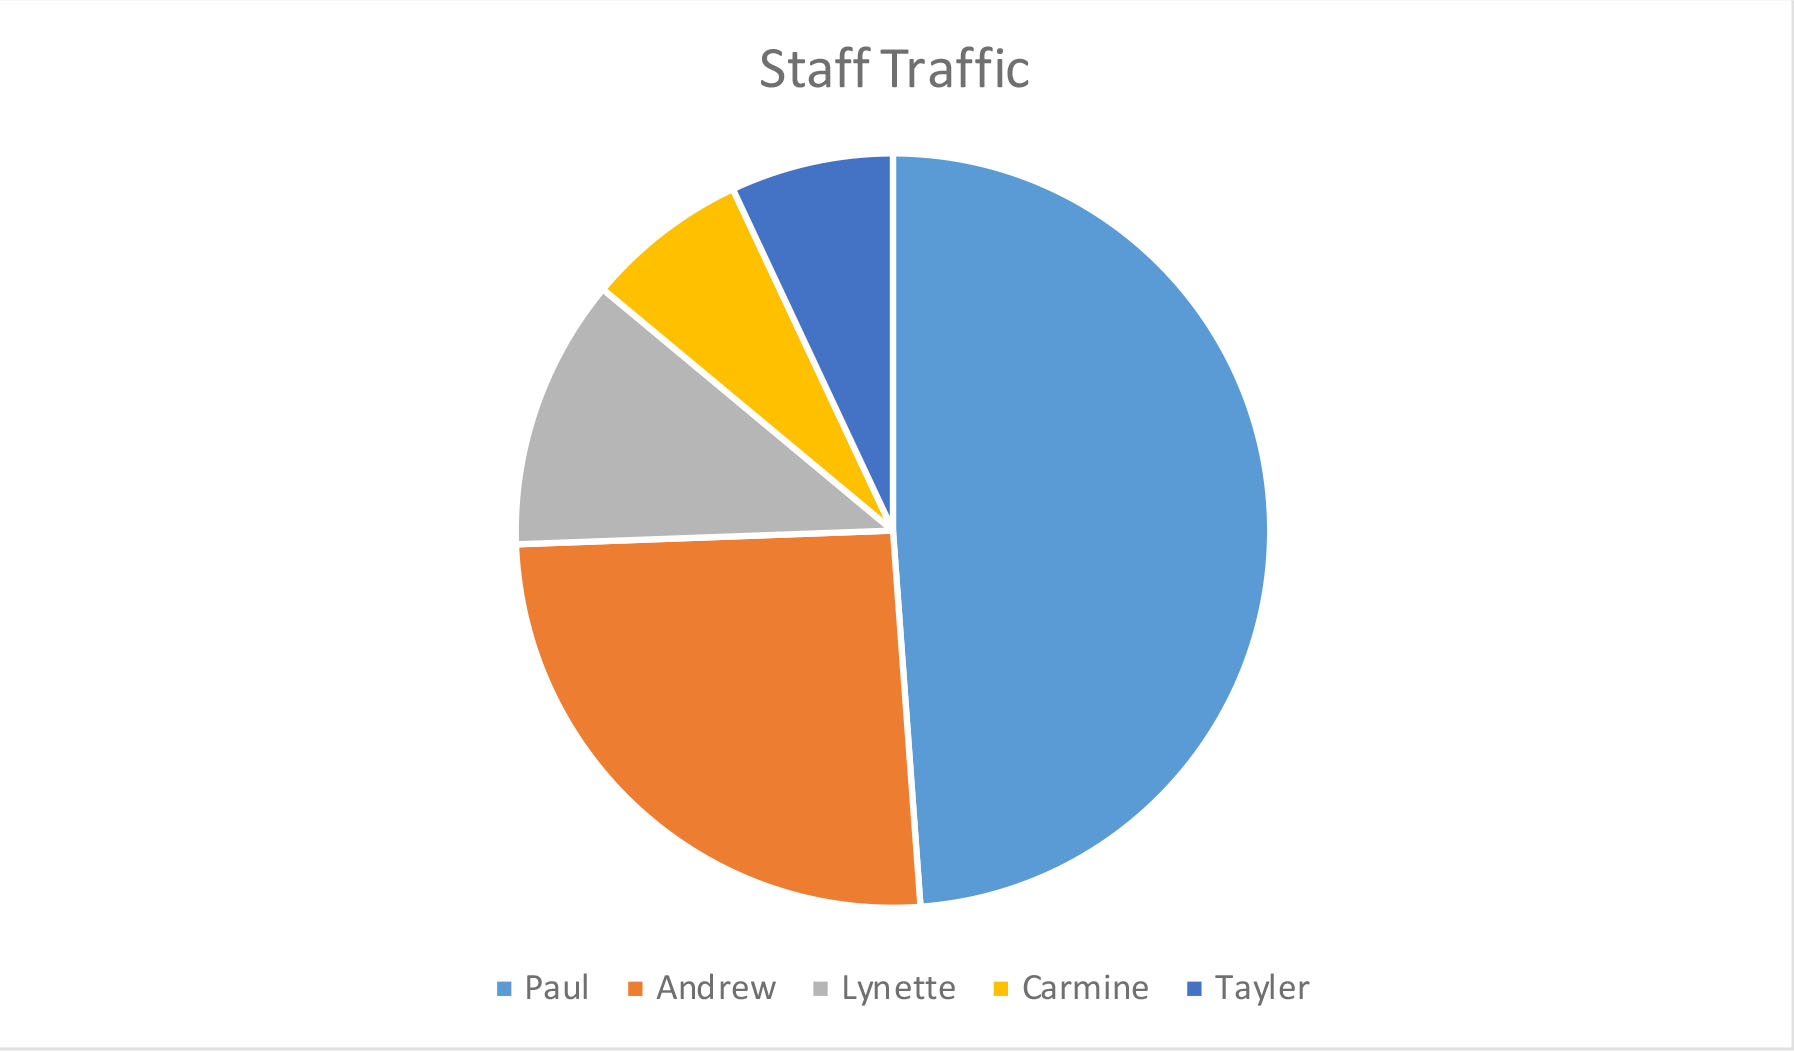 sd14_staff_traffic.jpg